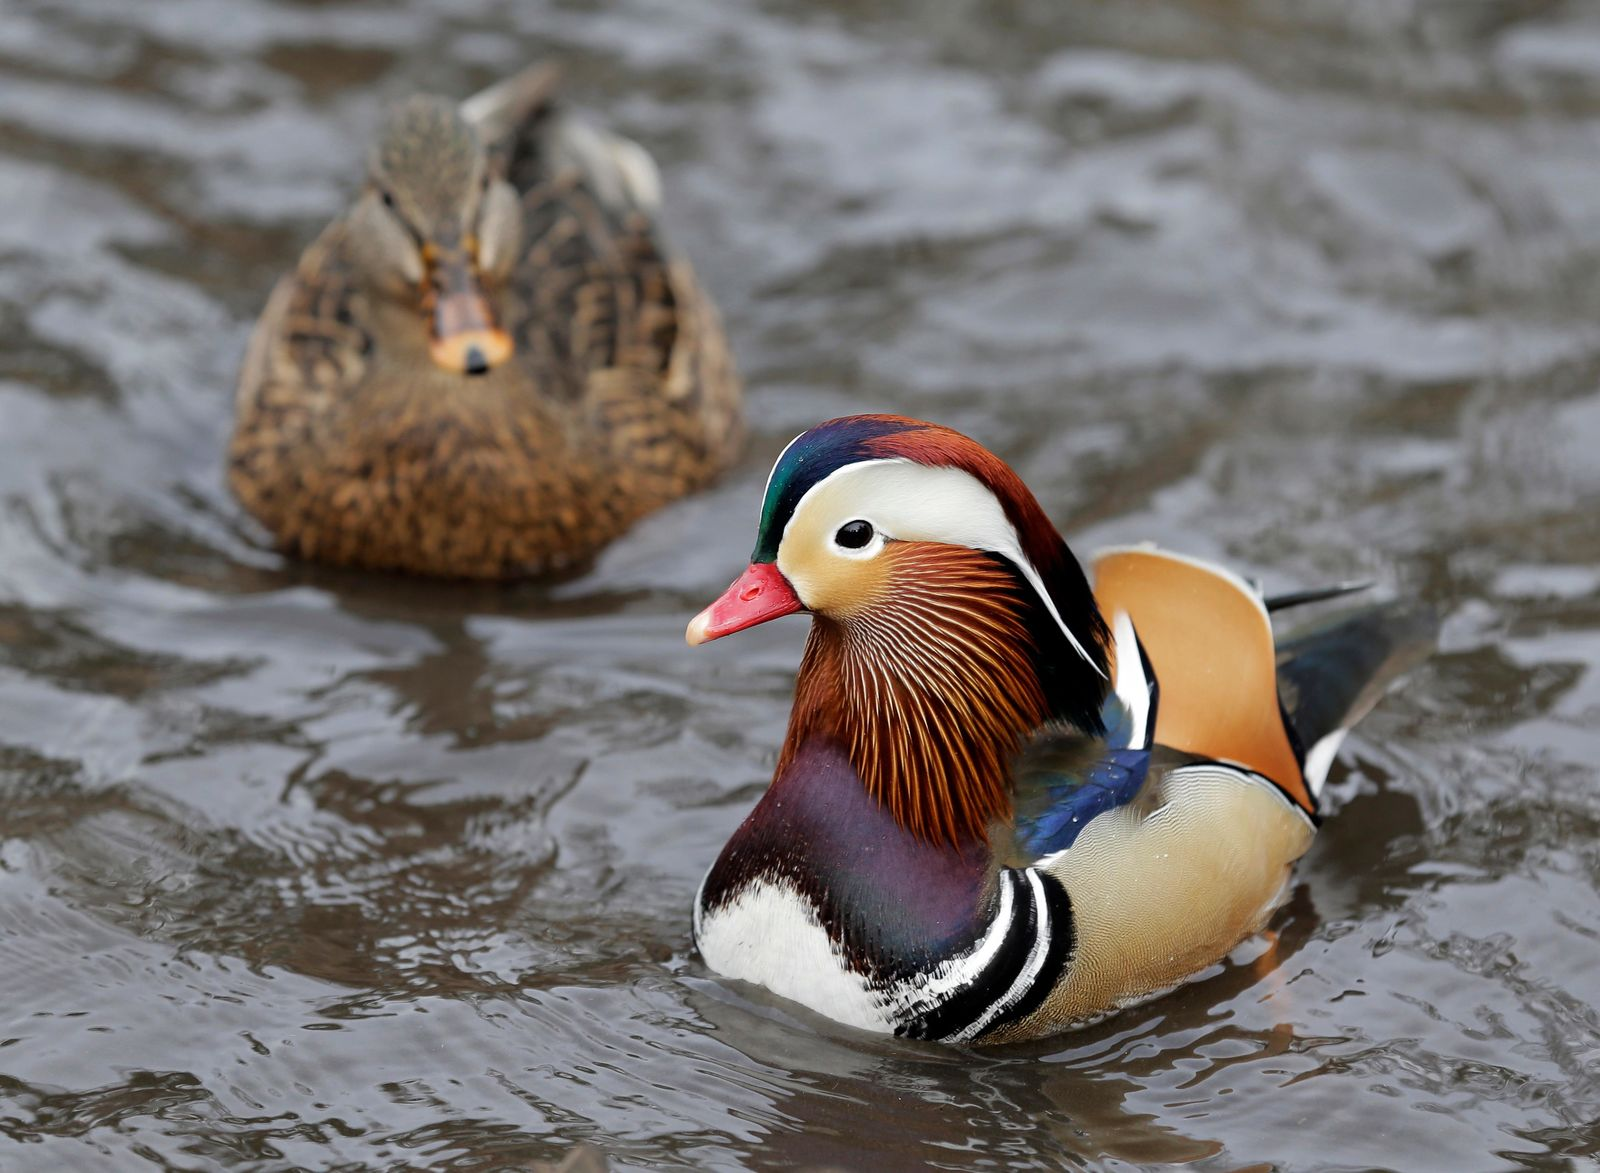 A Mandarin duck, right, swims in Central Park in New York, Wednesday, Dec. 5, 2018. In the weeks since it appeared in Central Park, the duck has become a celebrity. (AP Photo/Seth Wenig)